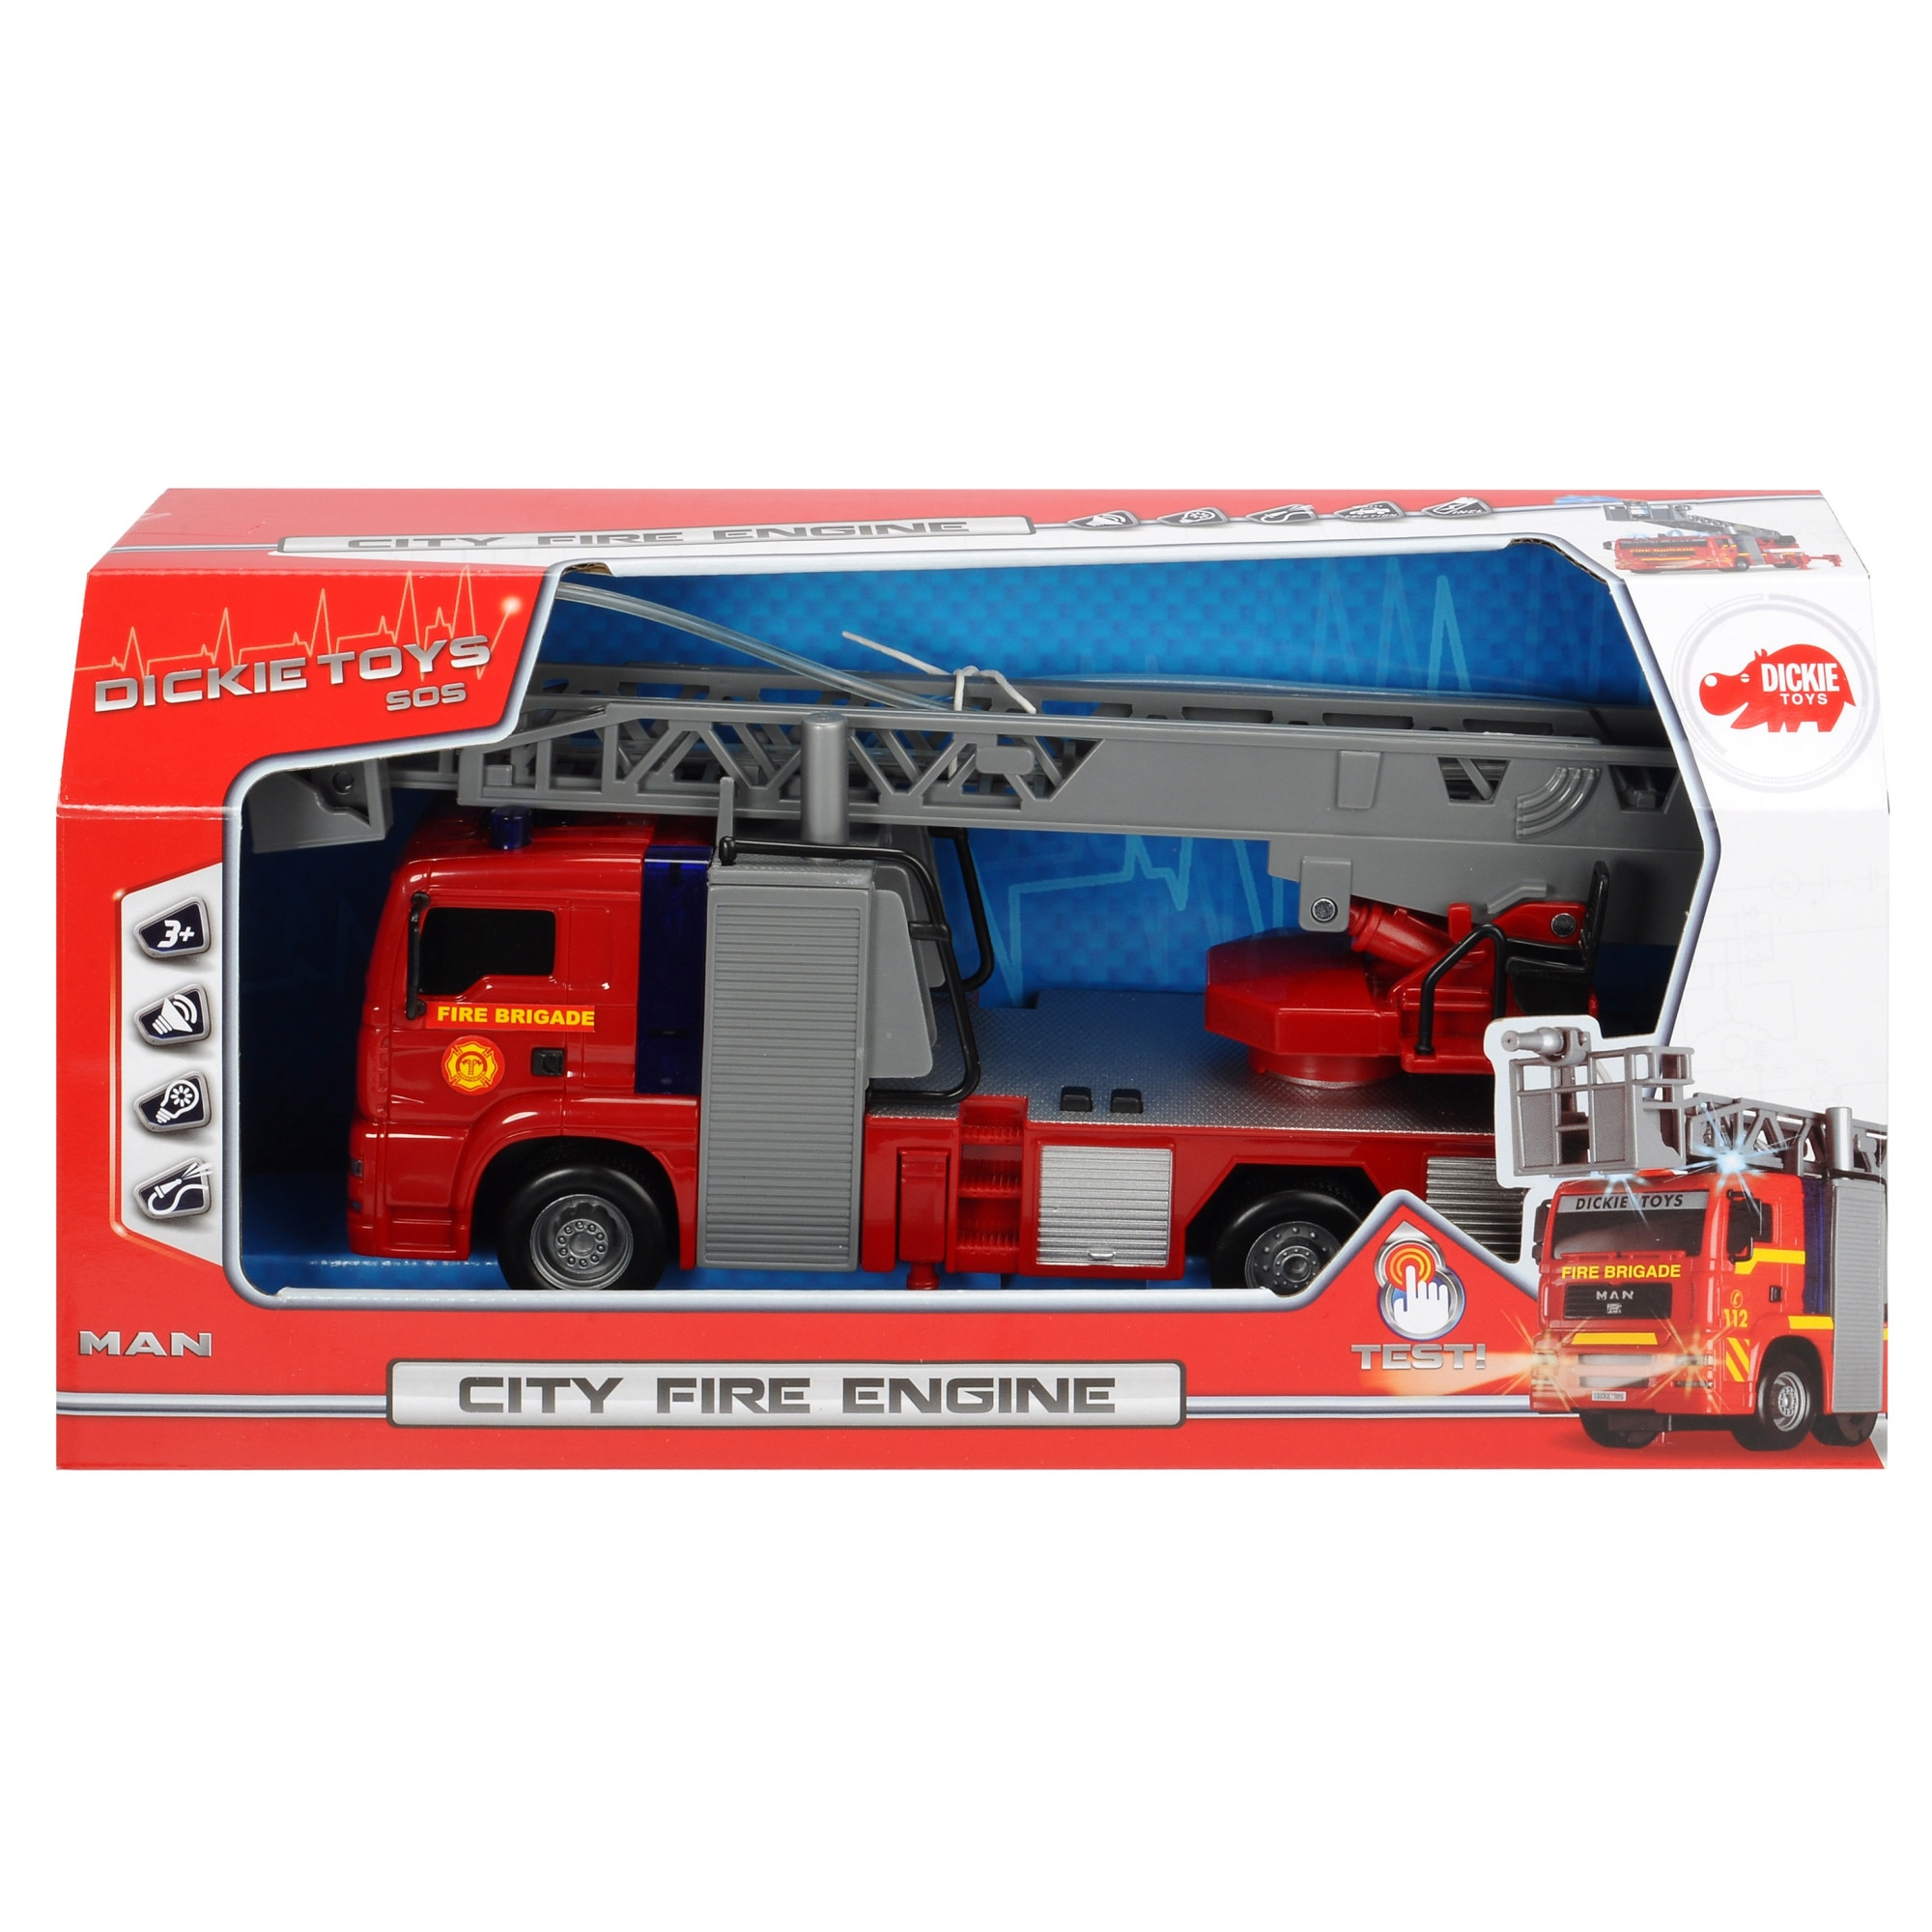 Masina de pompieri - City Fire Engine | Dickie Toys